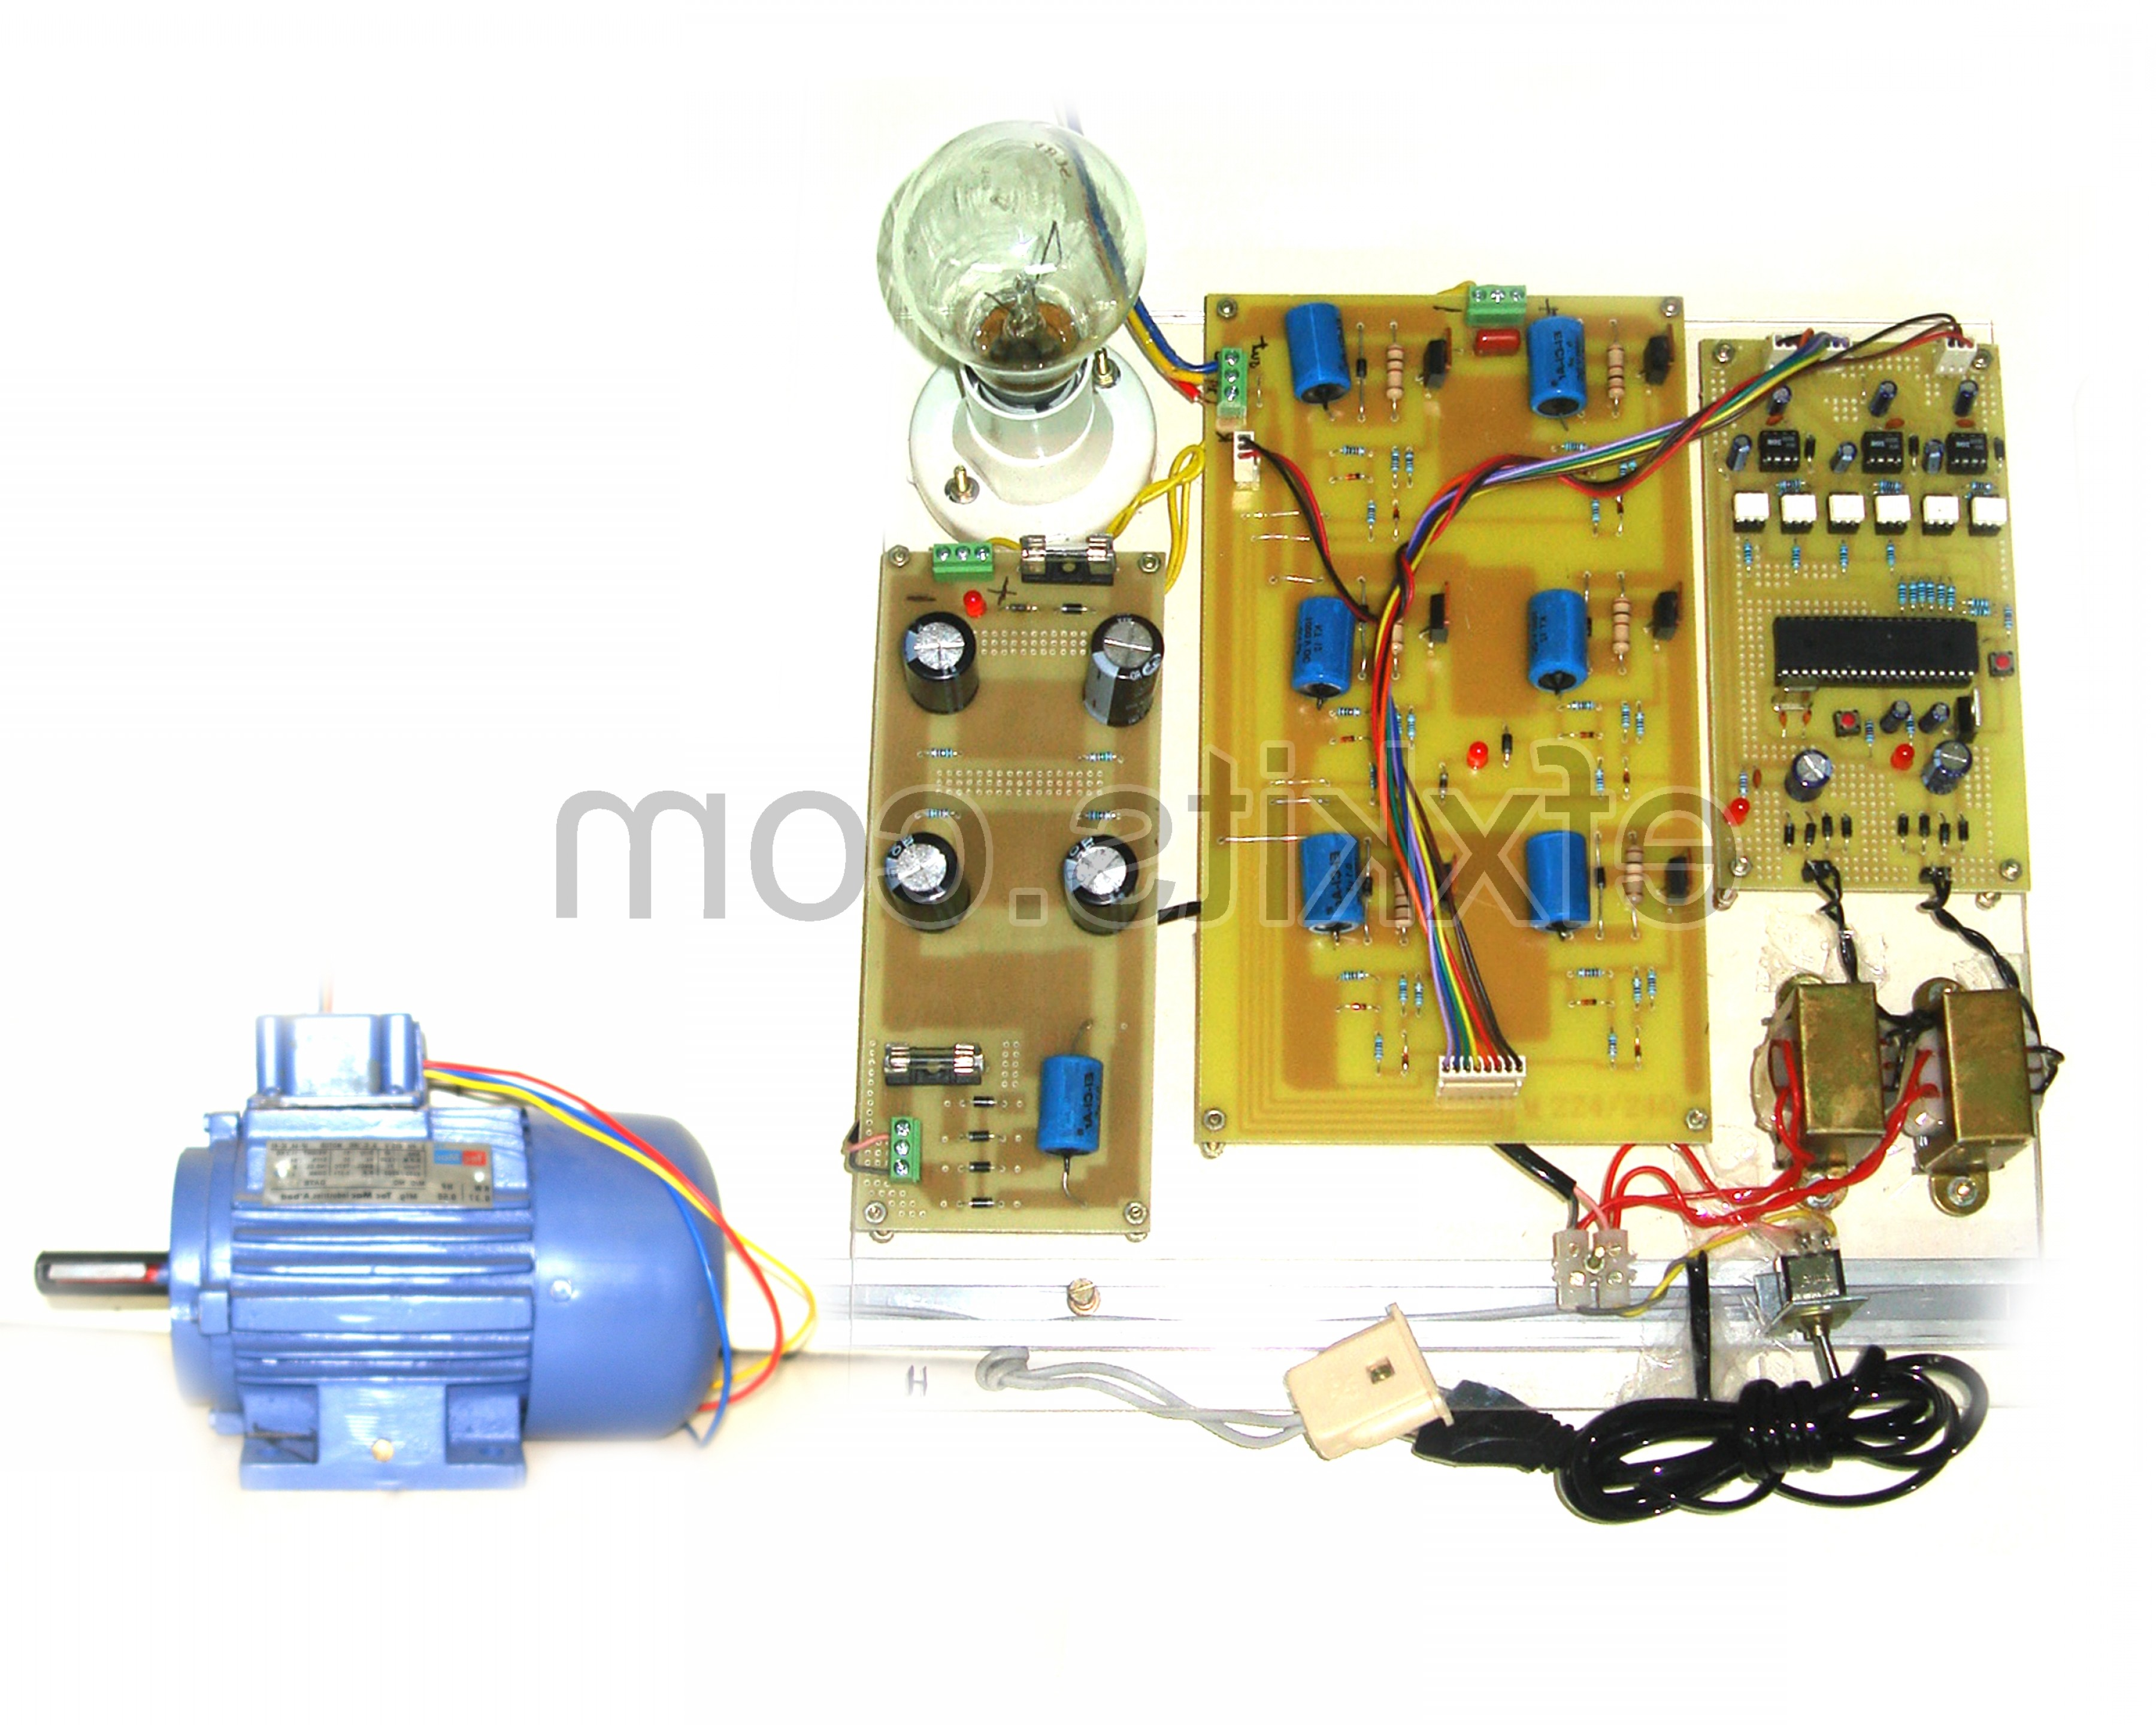 Vector 12V Inverter: Single Phase To Three Phase Converter Using Svpwm Space Vector Pulse Width Modulation Technique